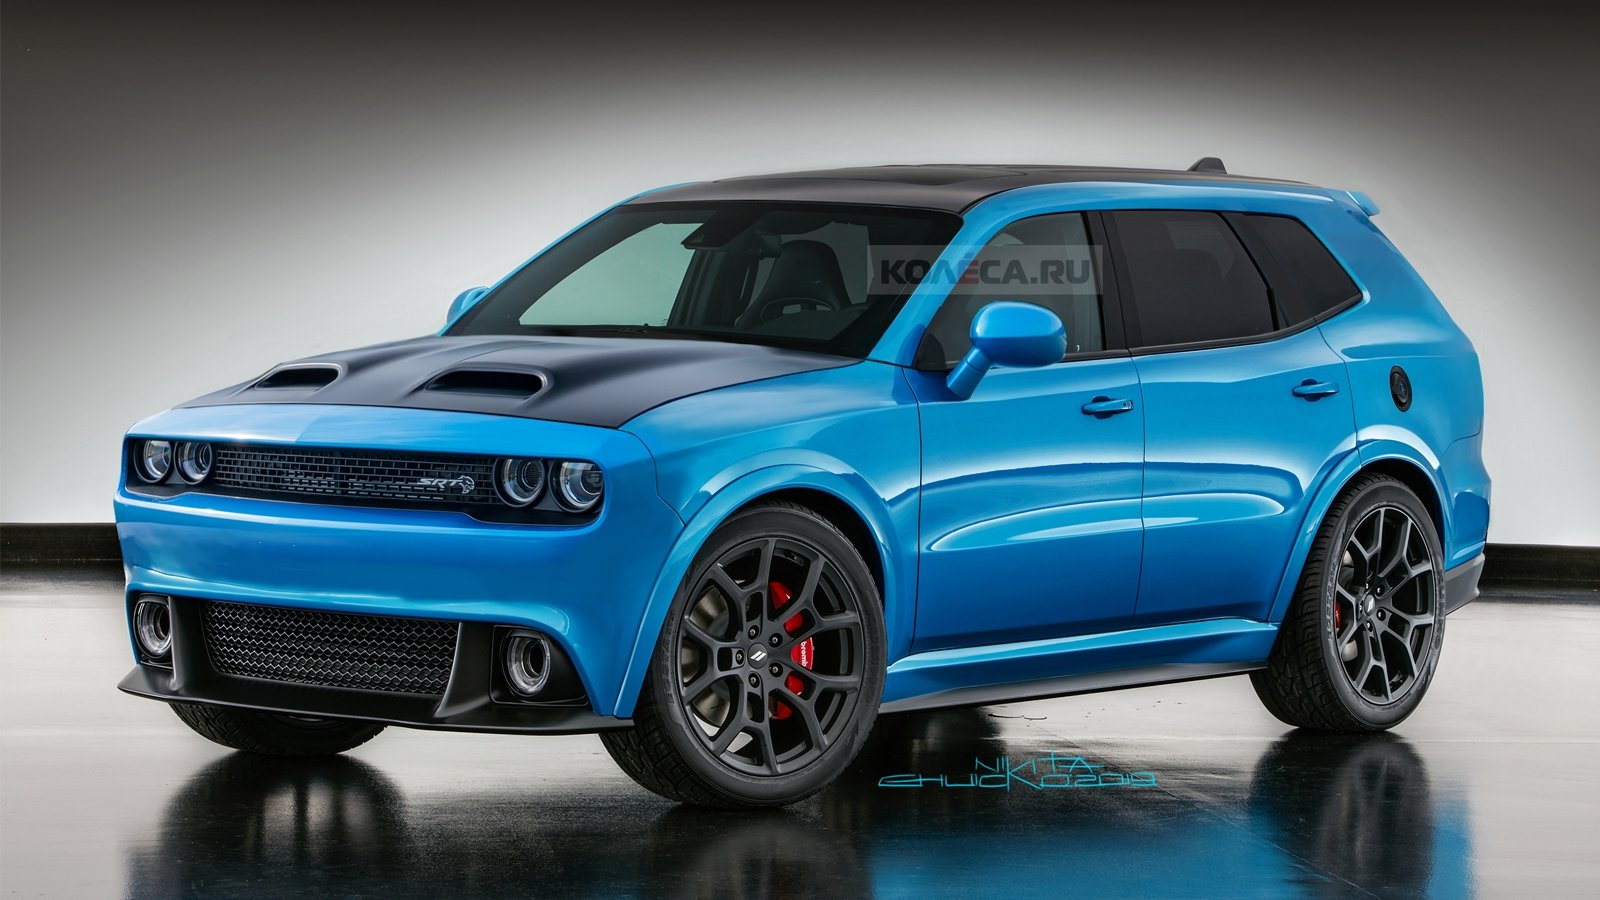 A Crazy Russian Artist Rendered A Dodge Challenger Based